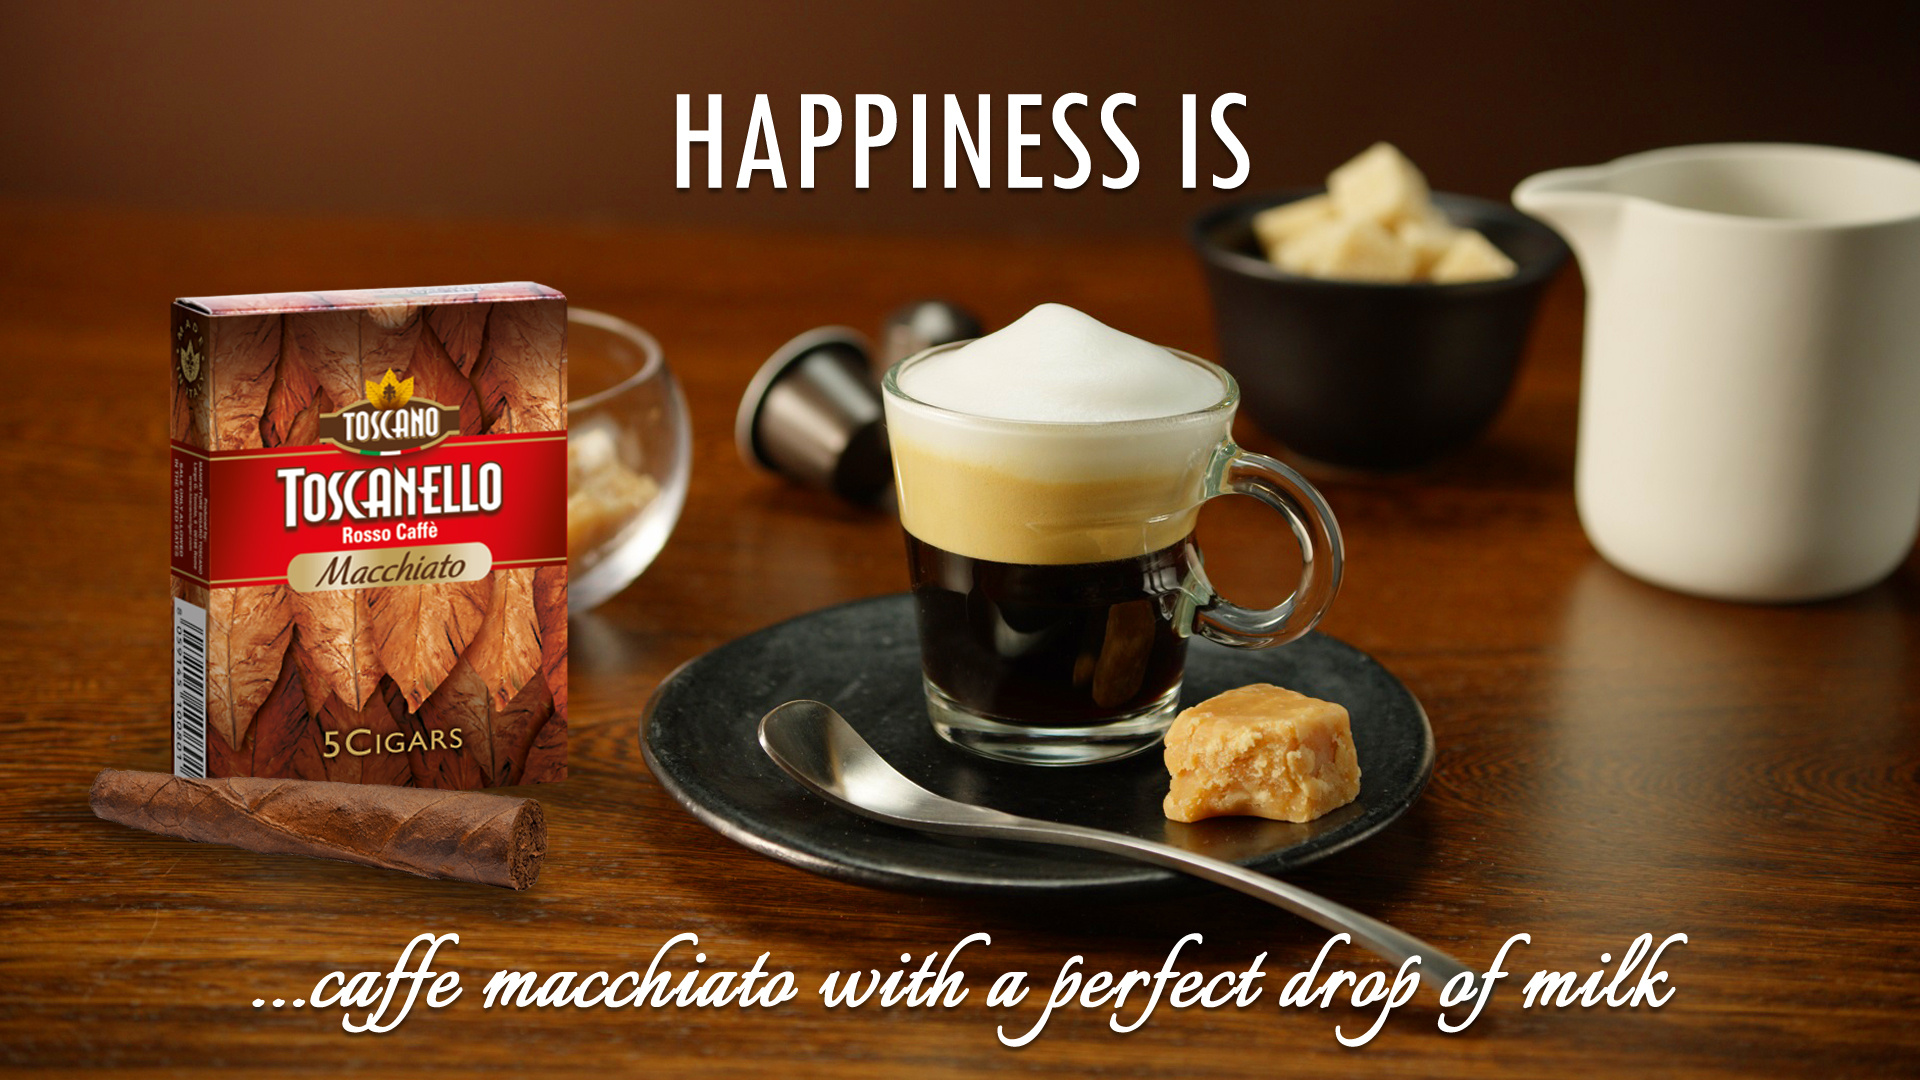 Happiness is Caffe Macchiato with a perfect drop of milk!